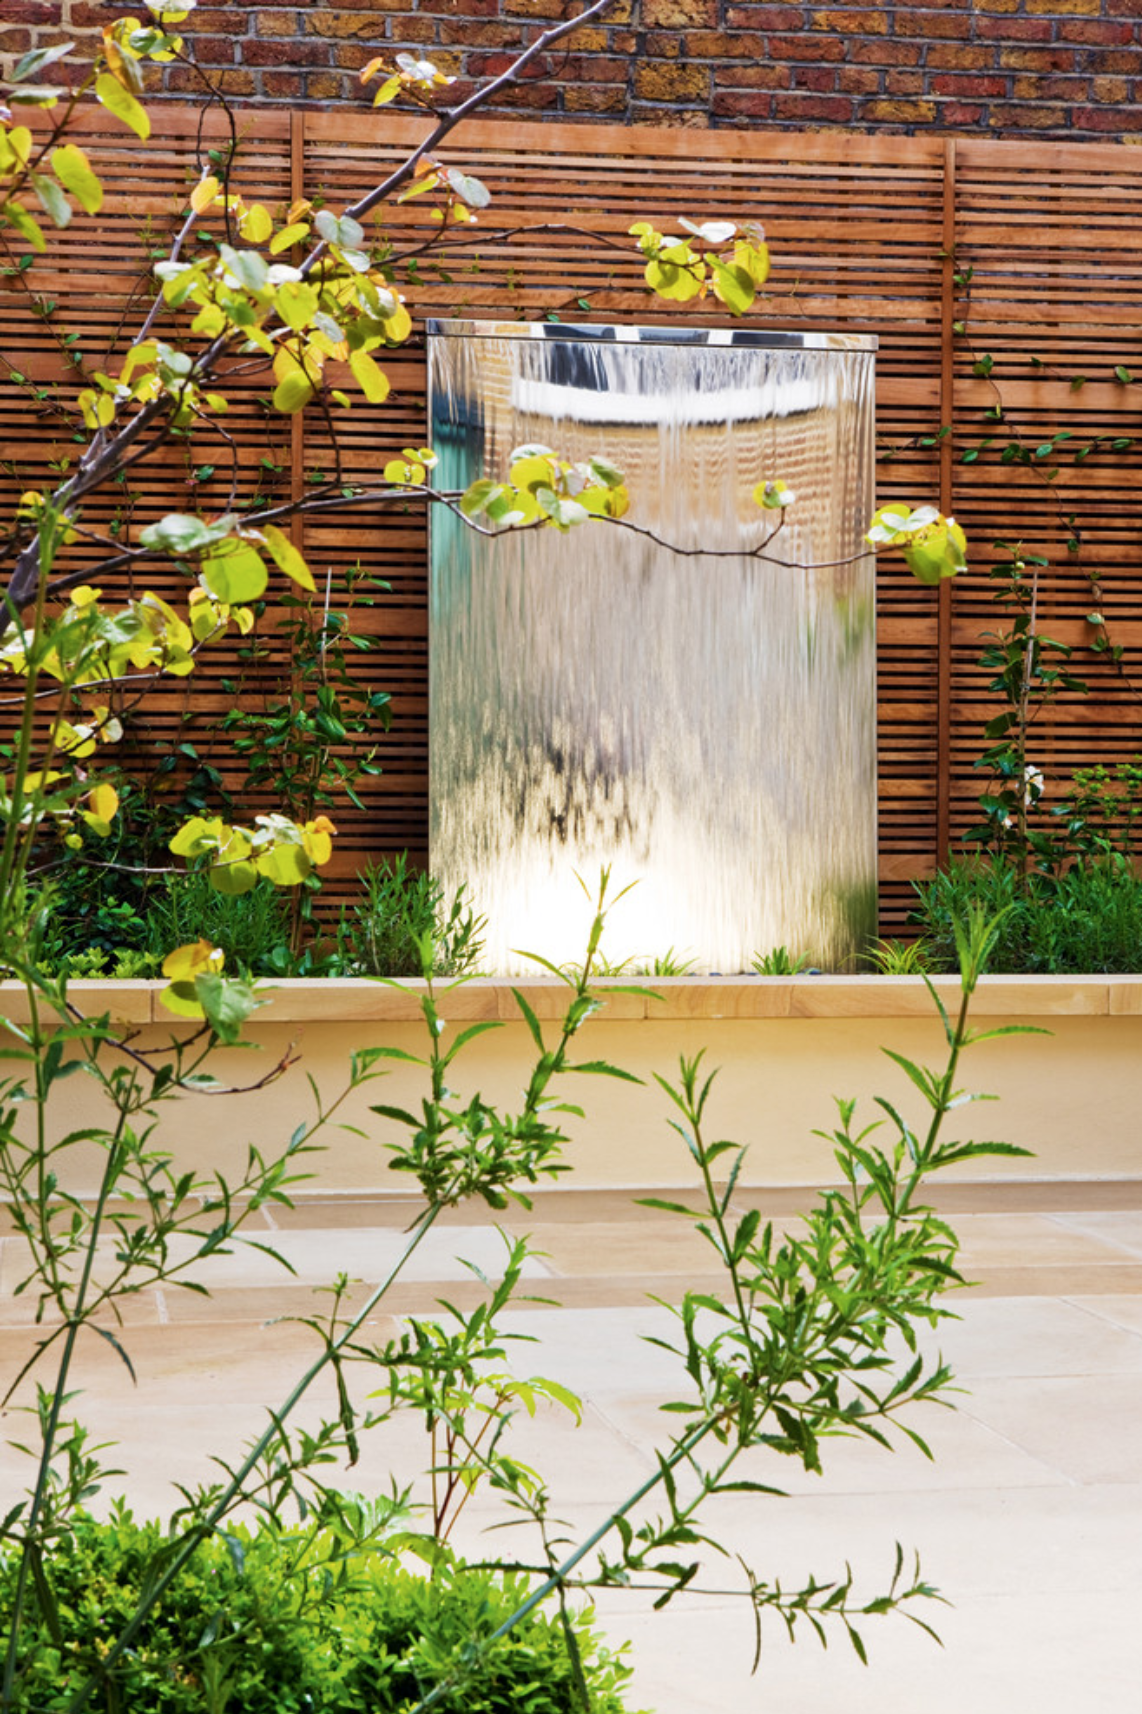 Outdoor water wall, great element to a biophilic outdoor design.